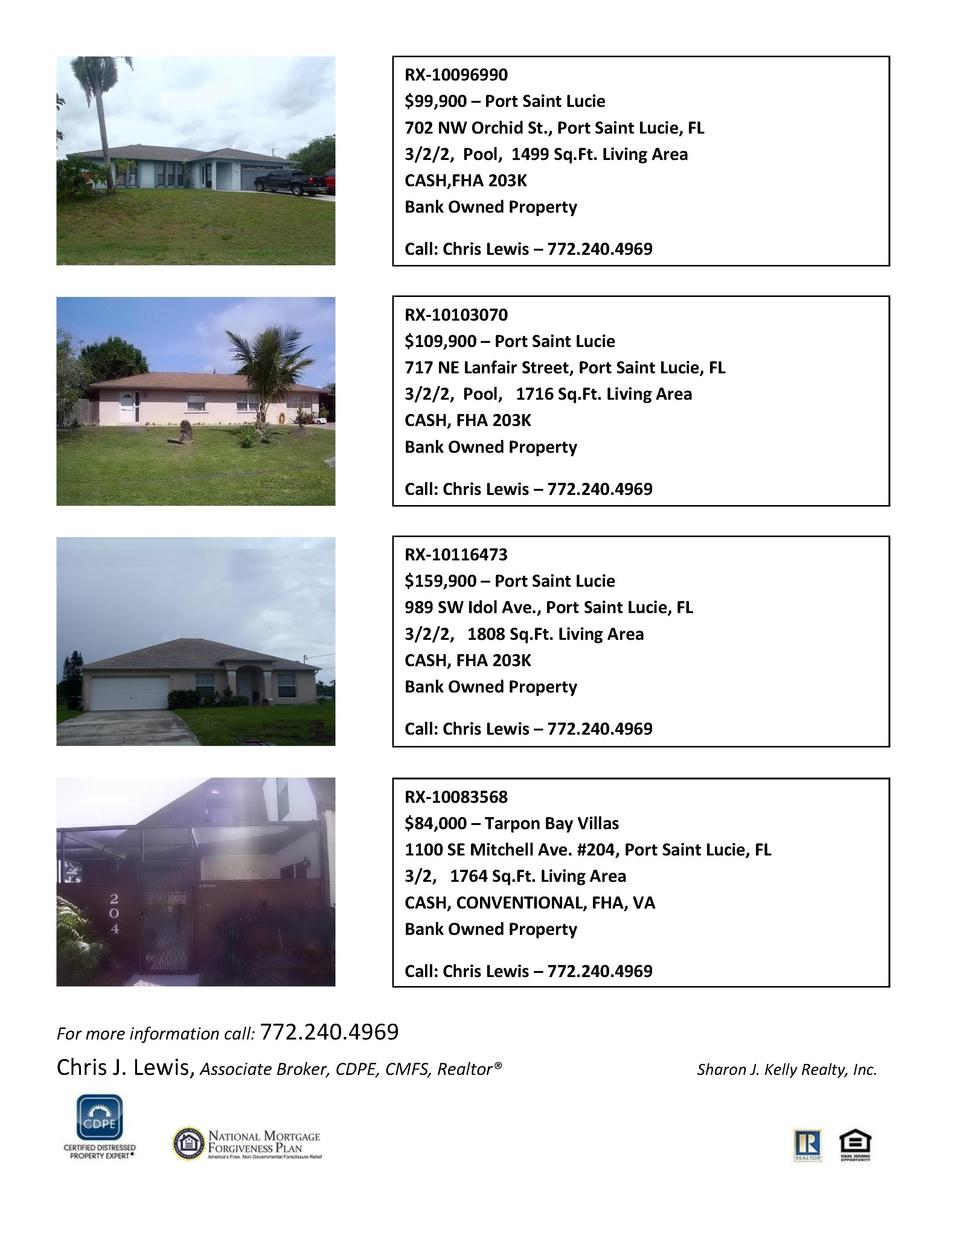 RX-10096990  99,900     Port Saint Lucie 702 NW Orchid St., Port Saint Lucie, FL 3 2 2, Pool, 1499 Sq.Ft. Living Area CASH...